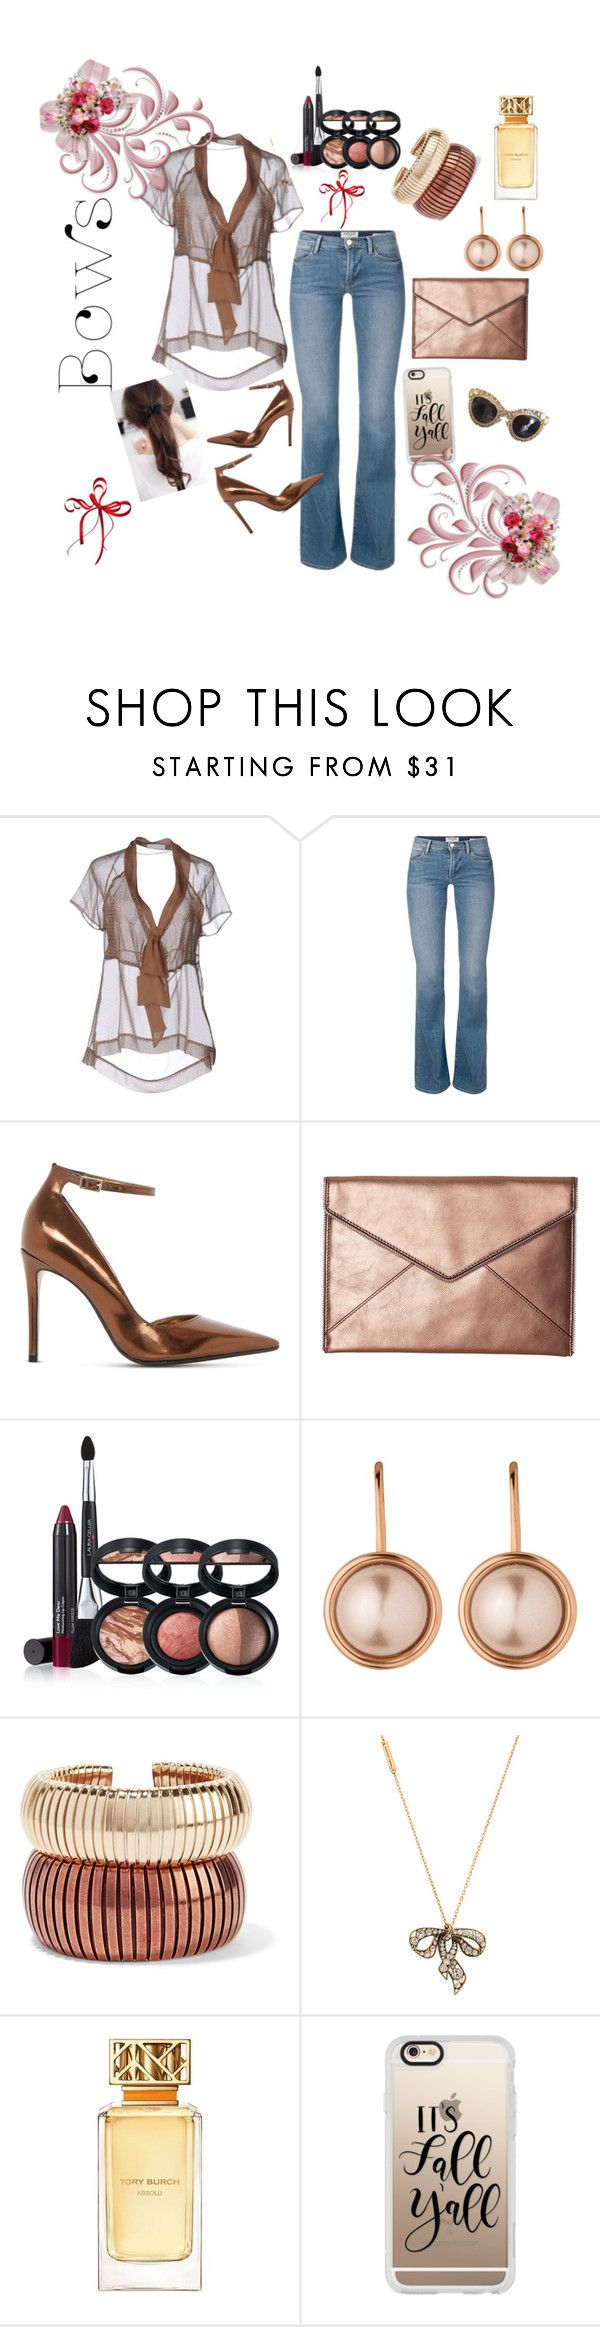 """""""Bows"""" by yvette-colon ❤ liked on Polyvore featuring SCERVINO STREET, Dune, Rebecca Minkoff, Laura Geller, Dyrberg/Kern, Rosantica, Marc Jacobs, Tory Burch, Casetify and Dolce&Gabbana"""